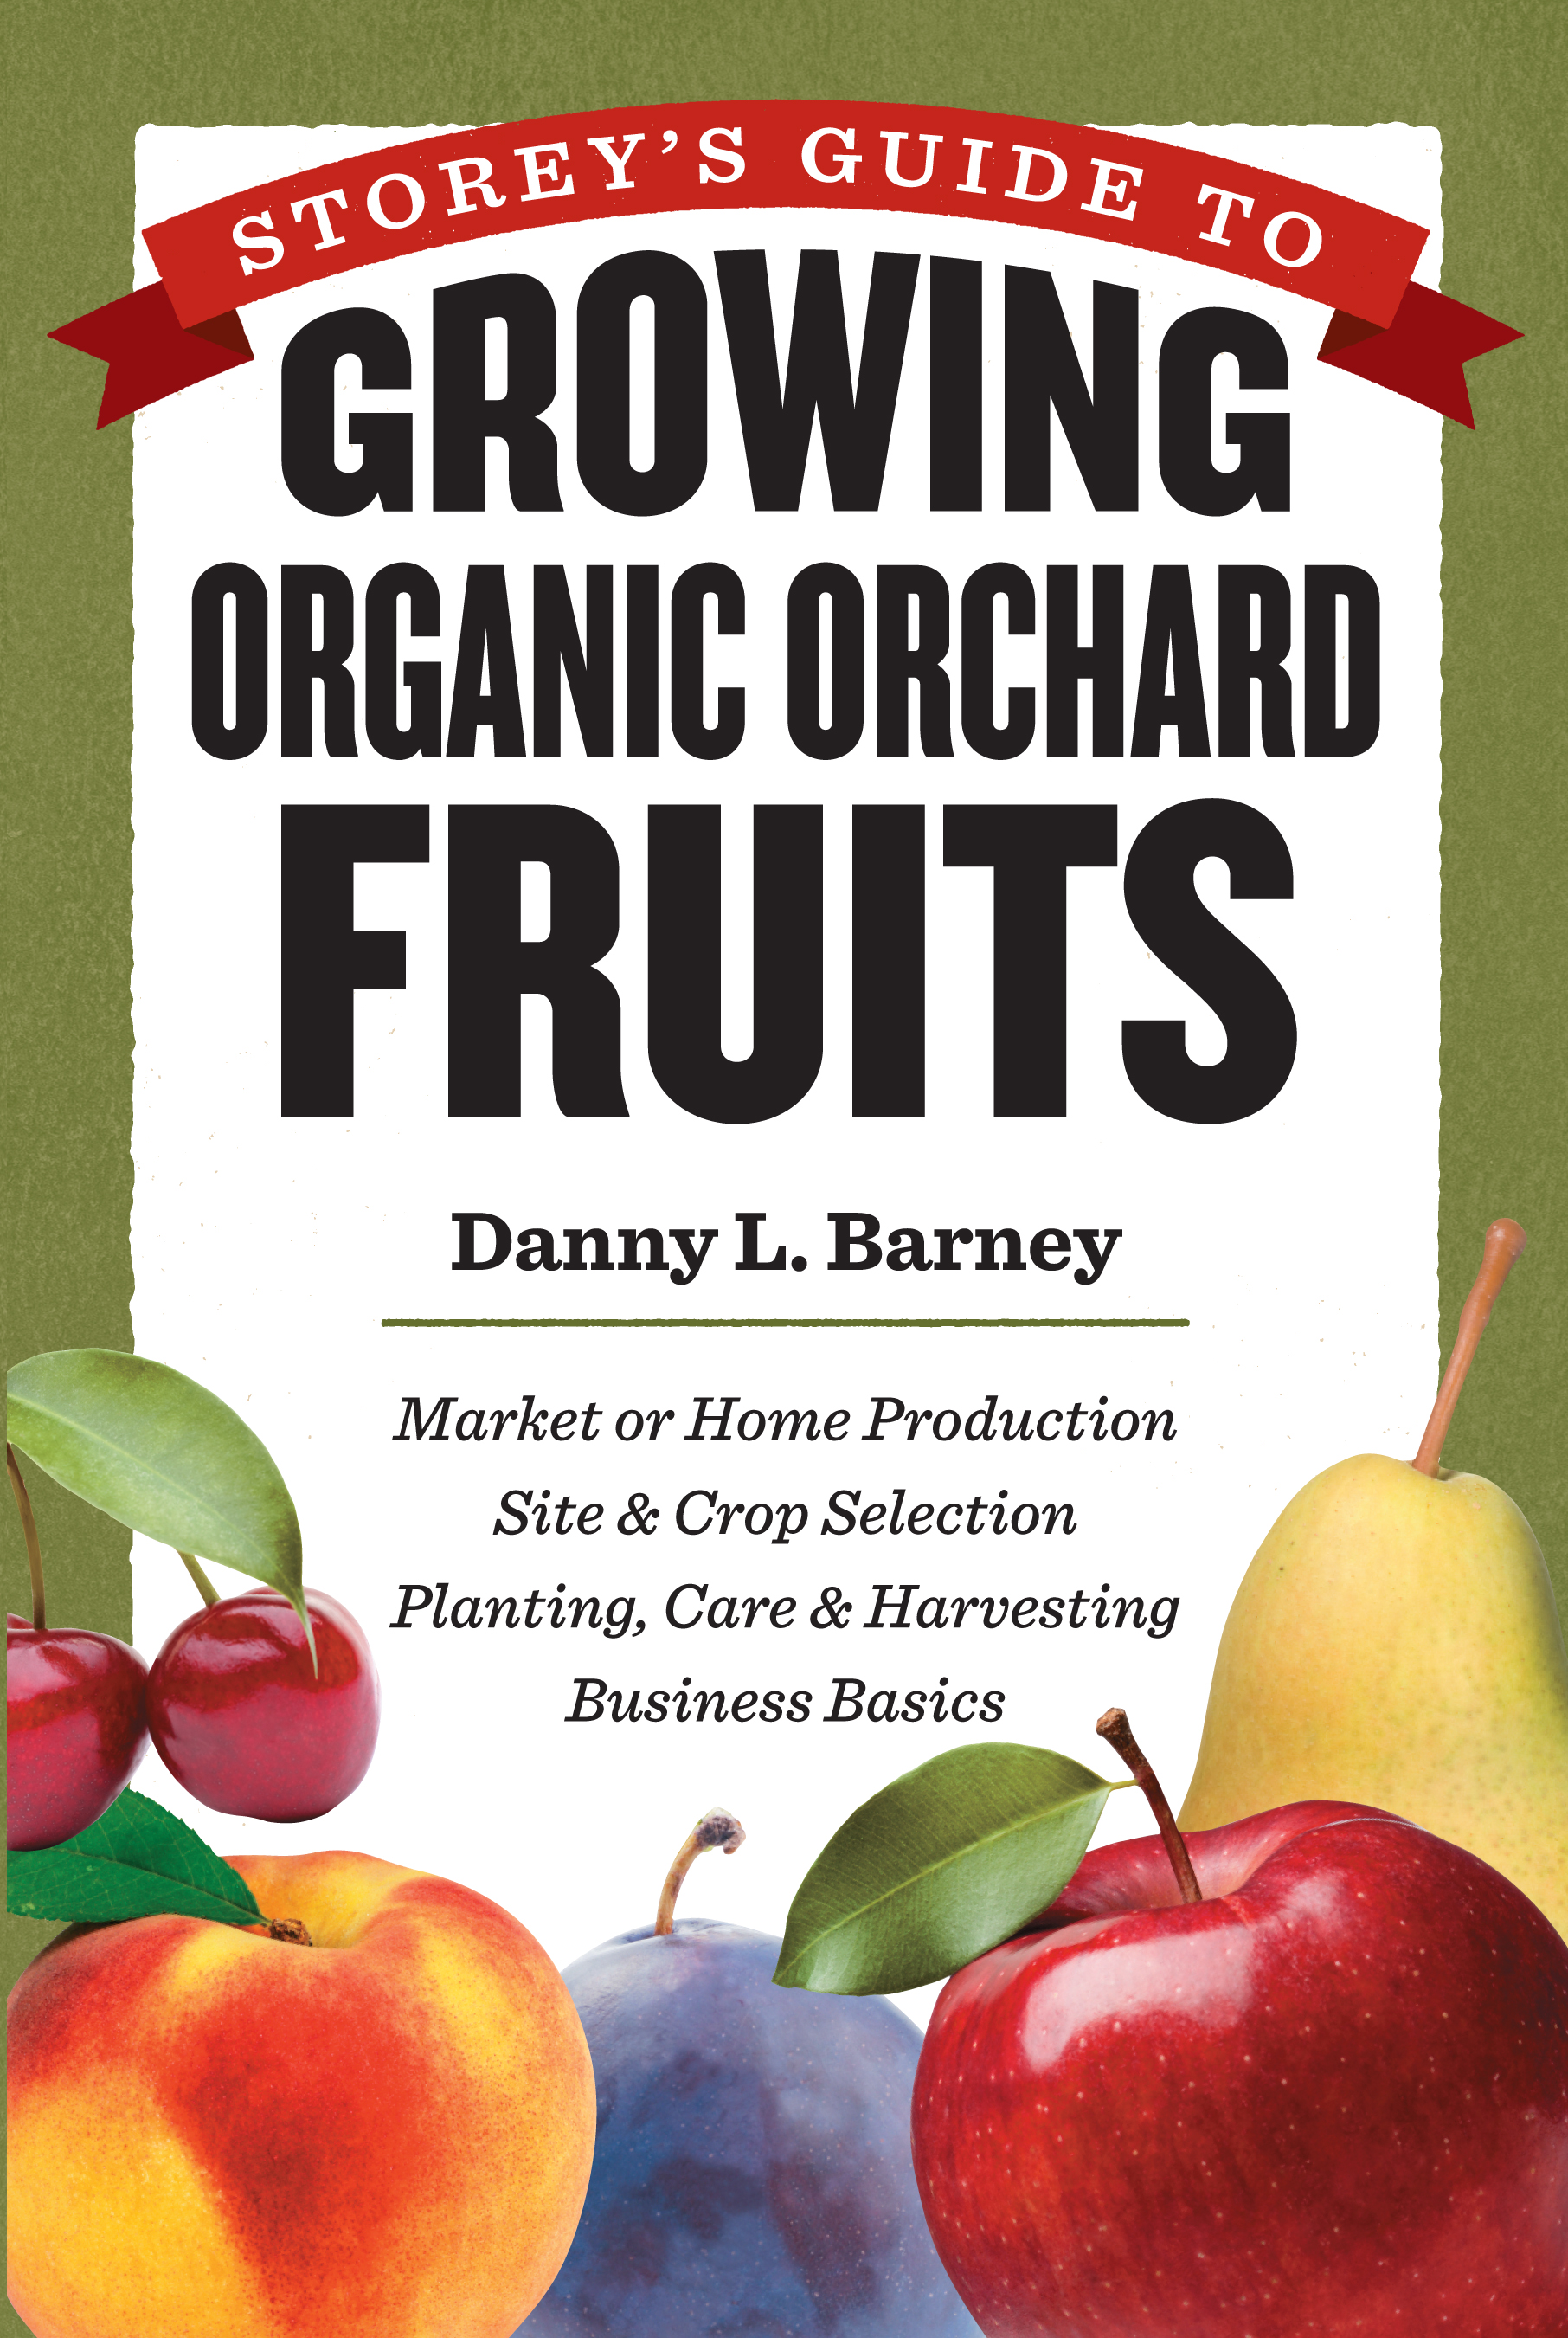 Storey's Guide to Growing Organic Orchard Fruits Market or Home Production * Site & Crop Selection * Planting, Care & Harvesting * Business Basics - Danny L. Barney